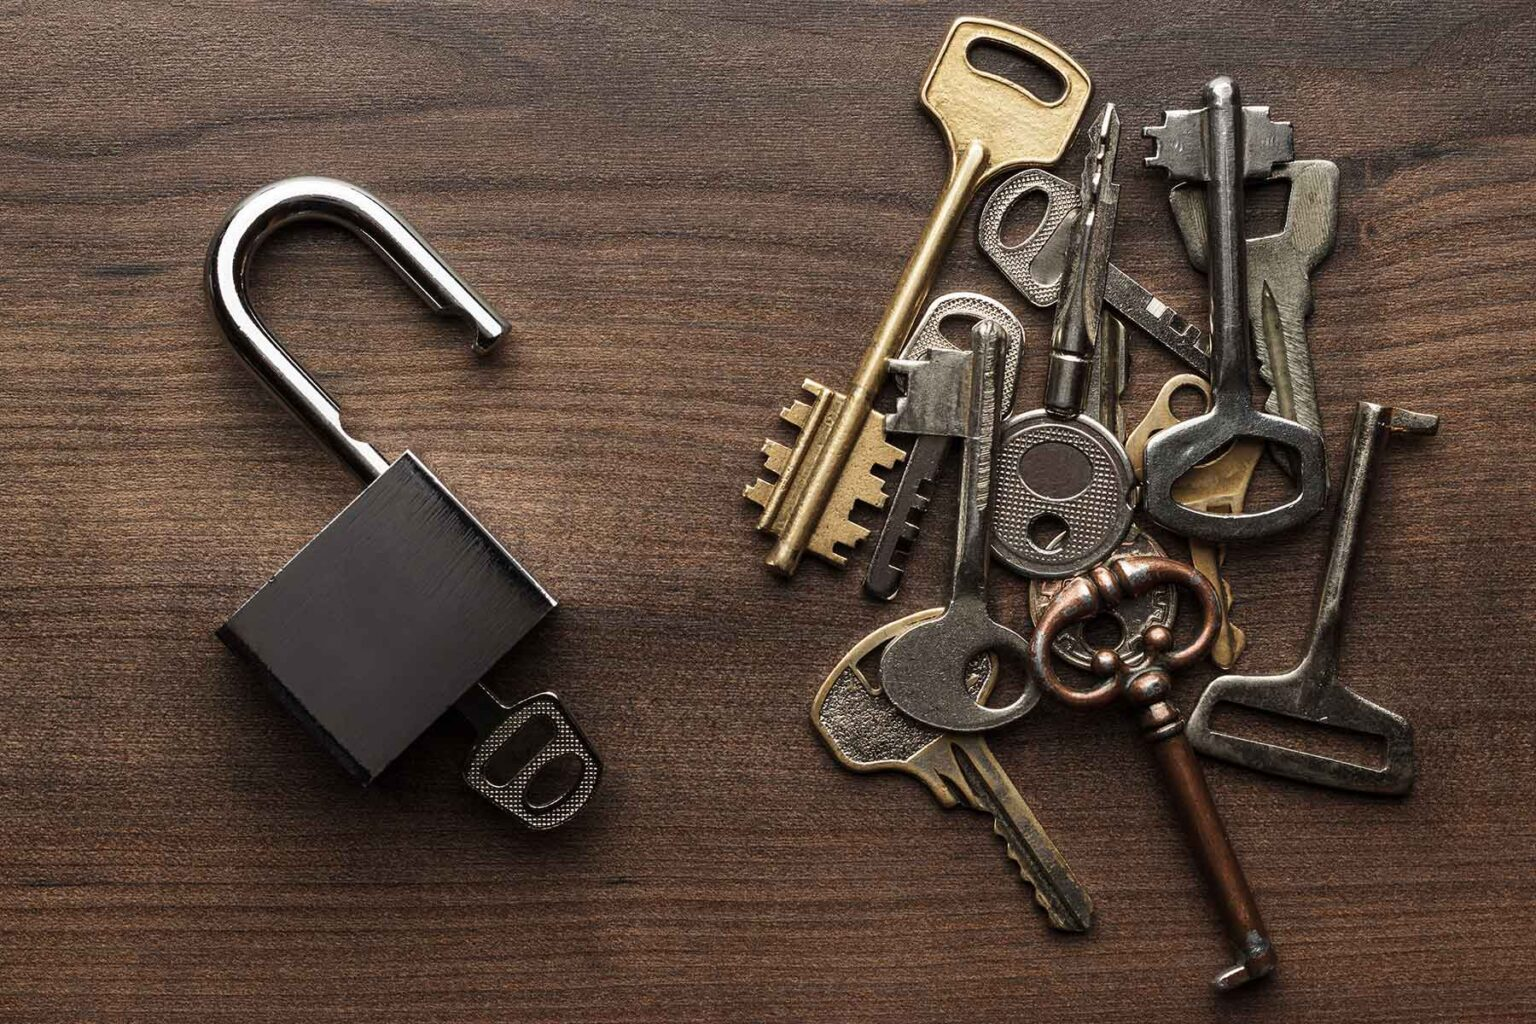 opened-check-lock-and-different-keys-concept-P55V4P3.jpg